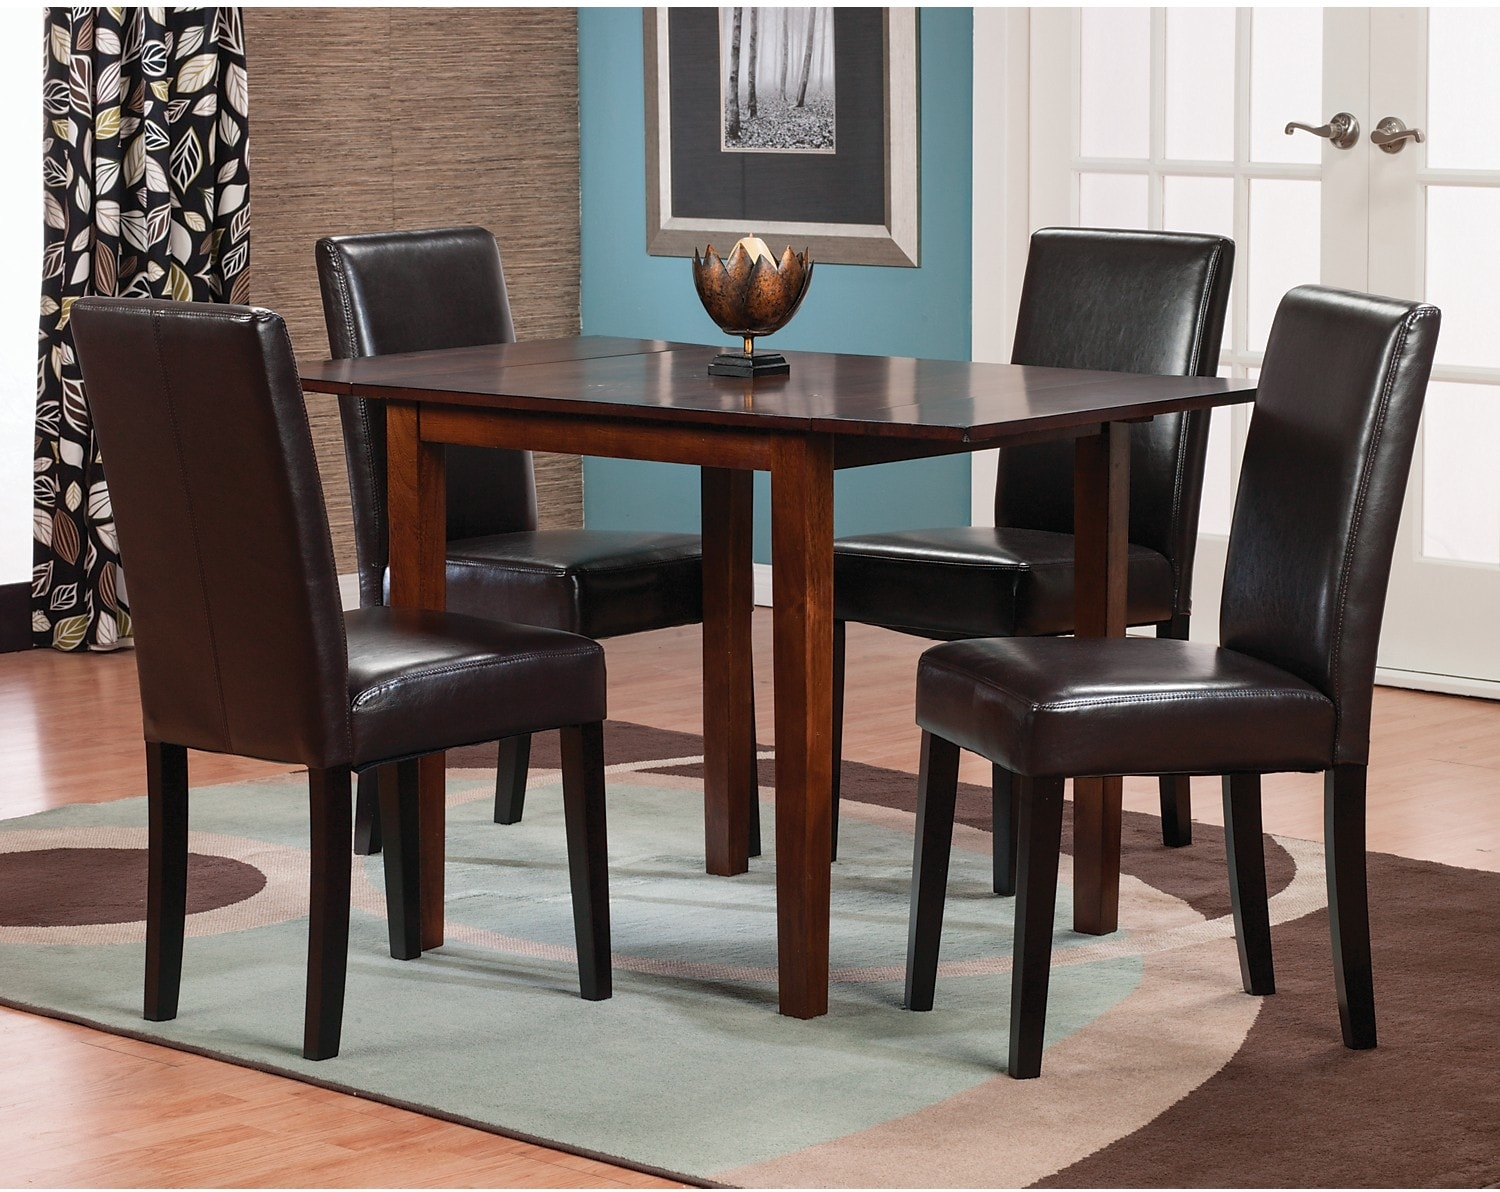 Adara 5-Piece Square Dining Package with Brown Accent Chairs